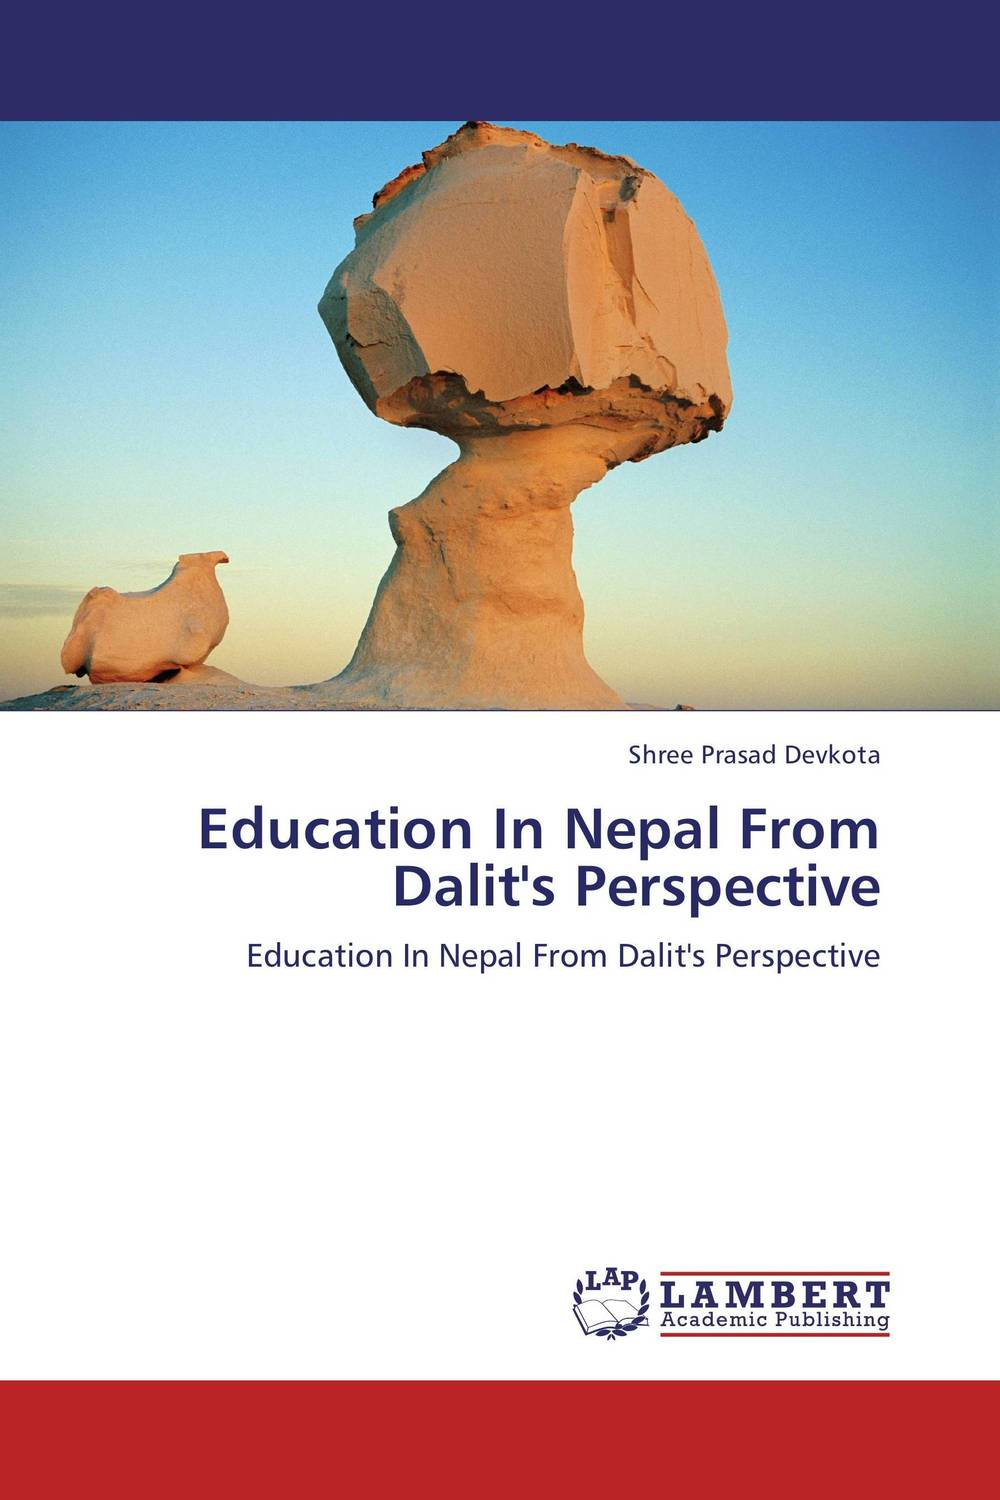 Education In Nepal From Dalit's Perspective